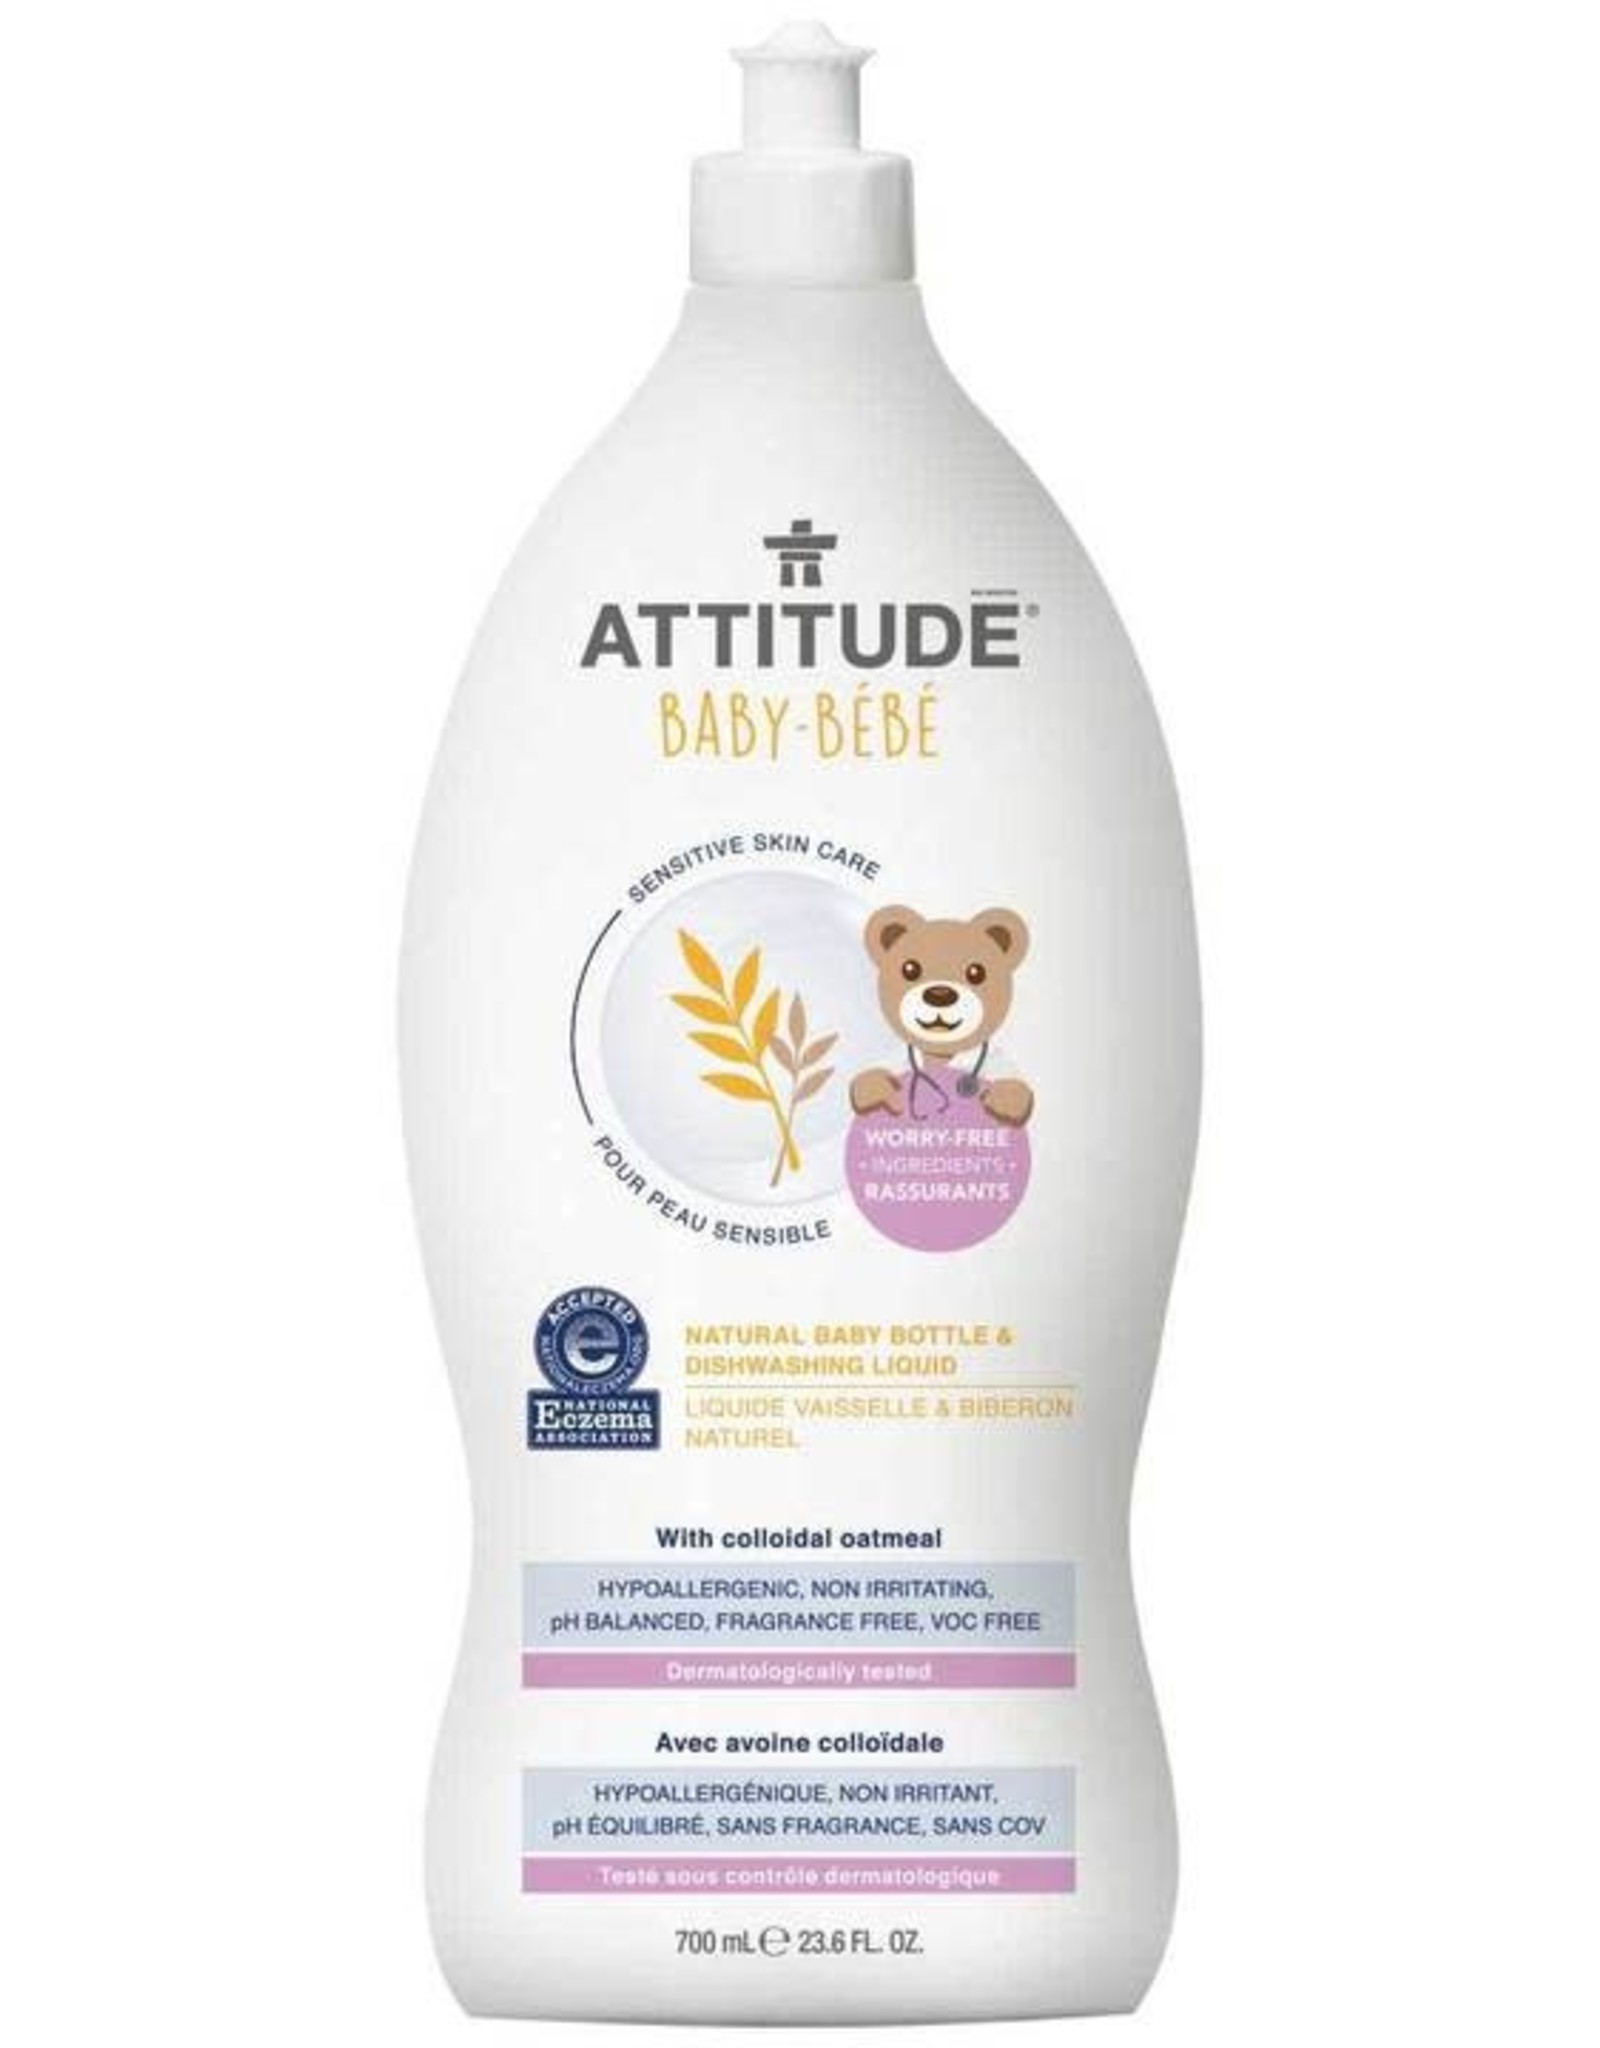 Attitude Sensitive Skin Care with Colloidal Oatmeal Afwasmiddel Bébé 700ml